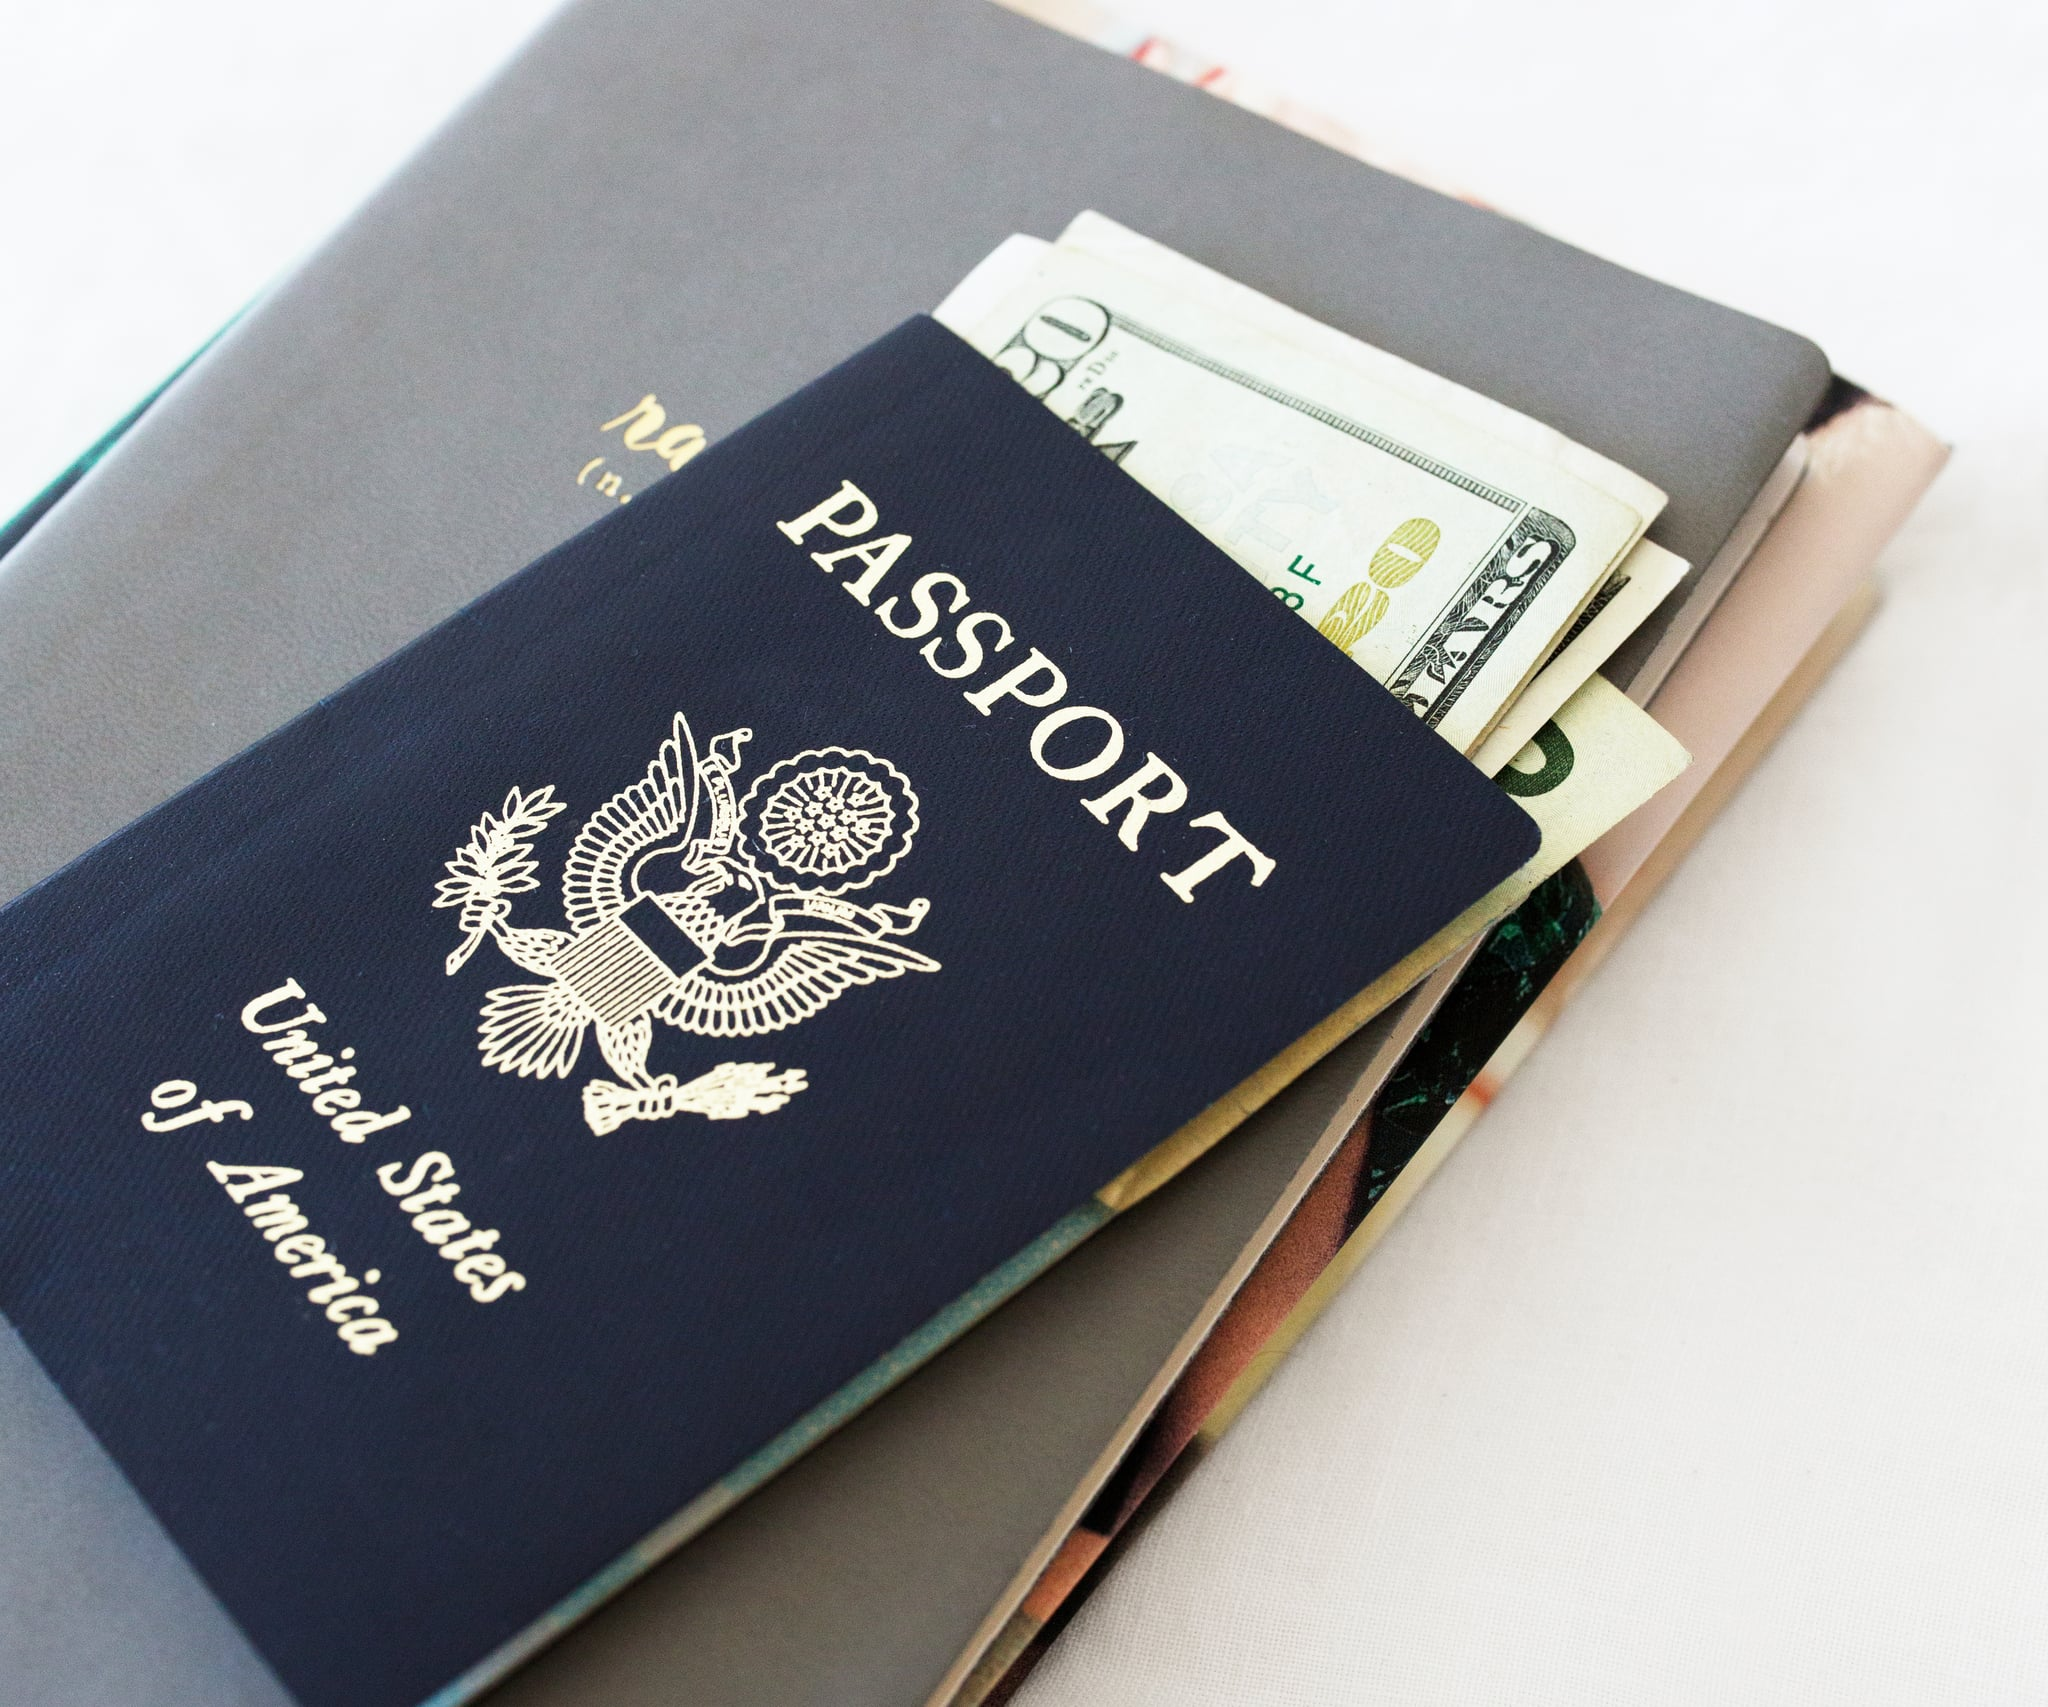 Traveling in European Union could mean extra paperwork for USA citizens